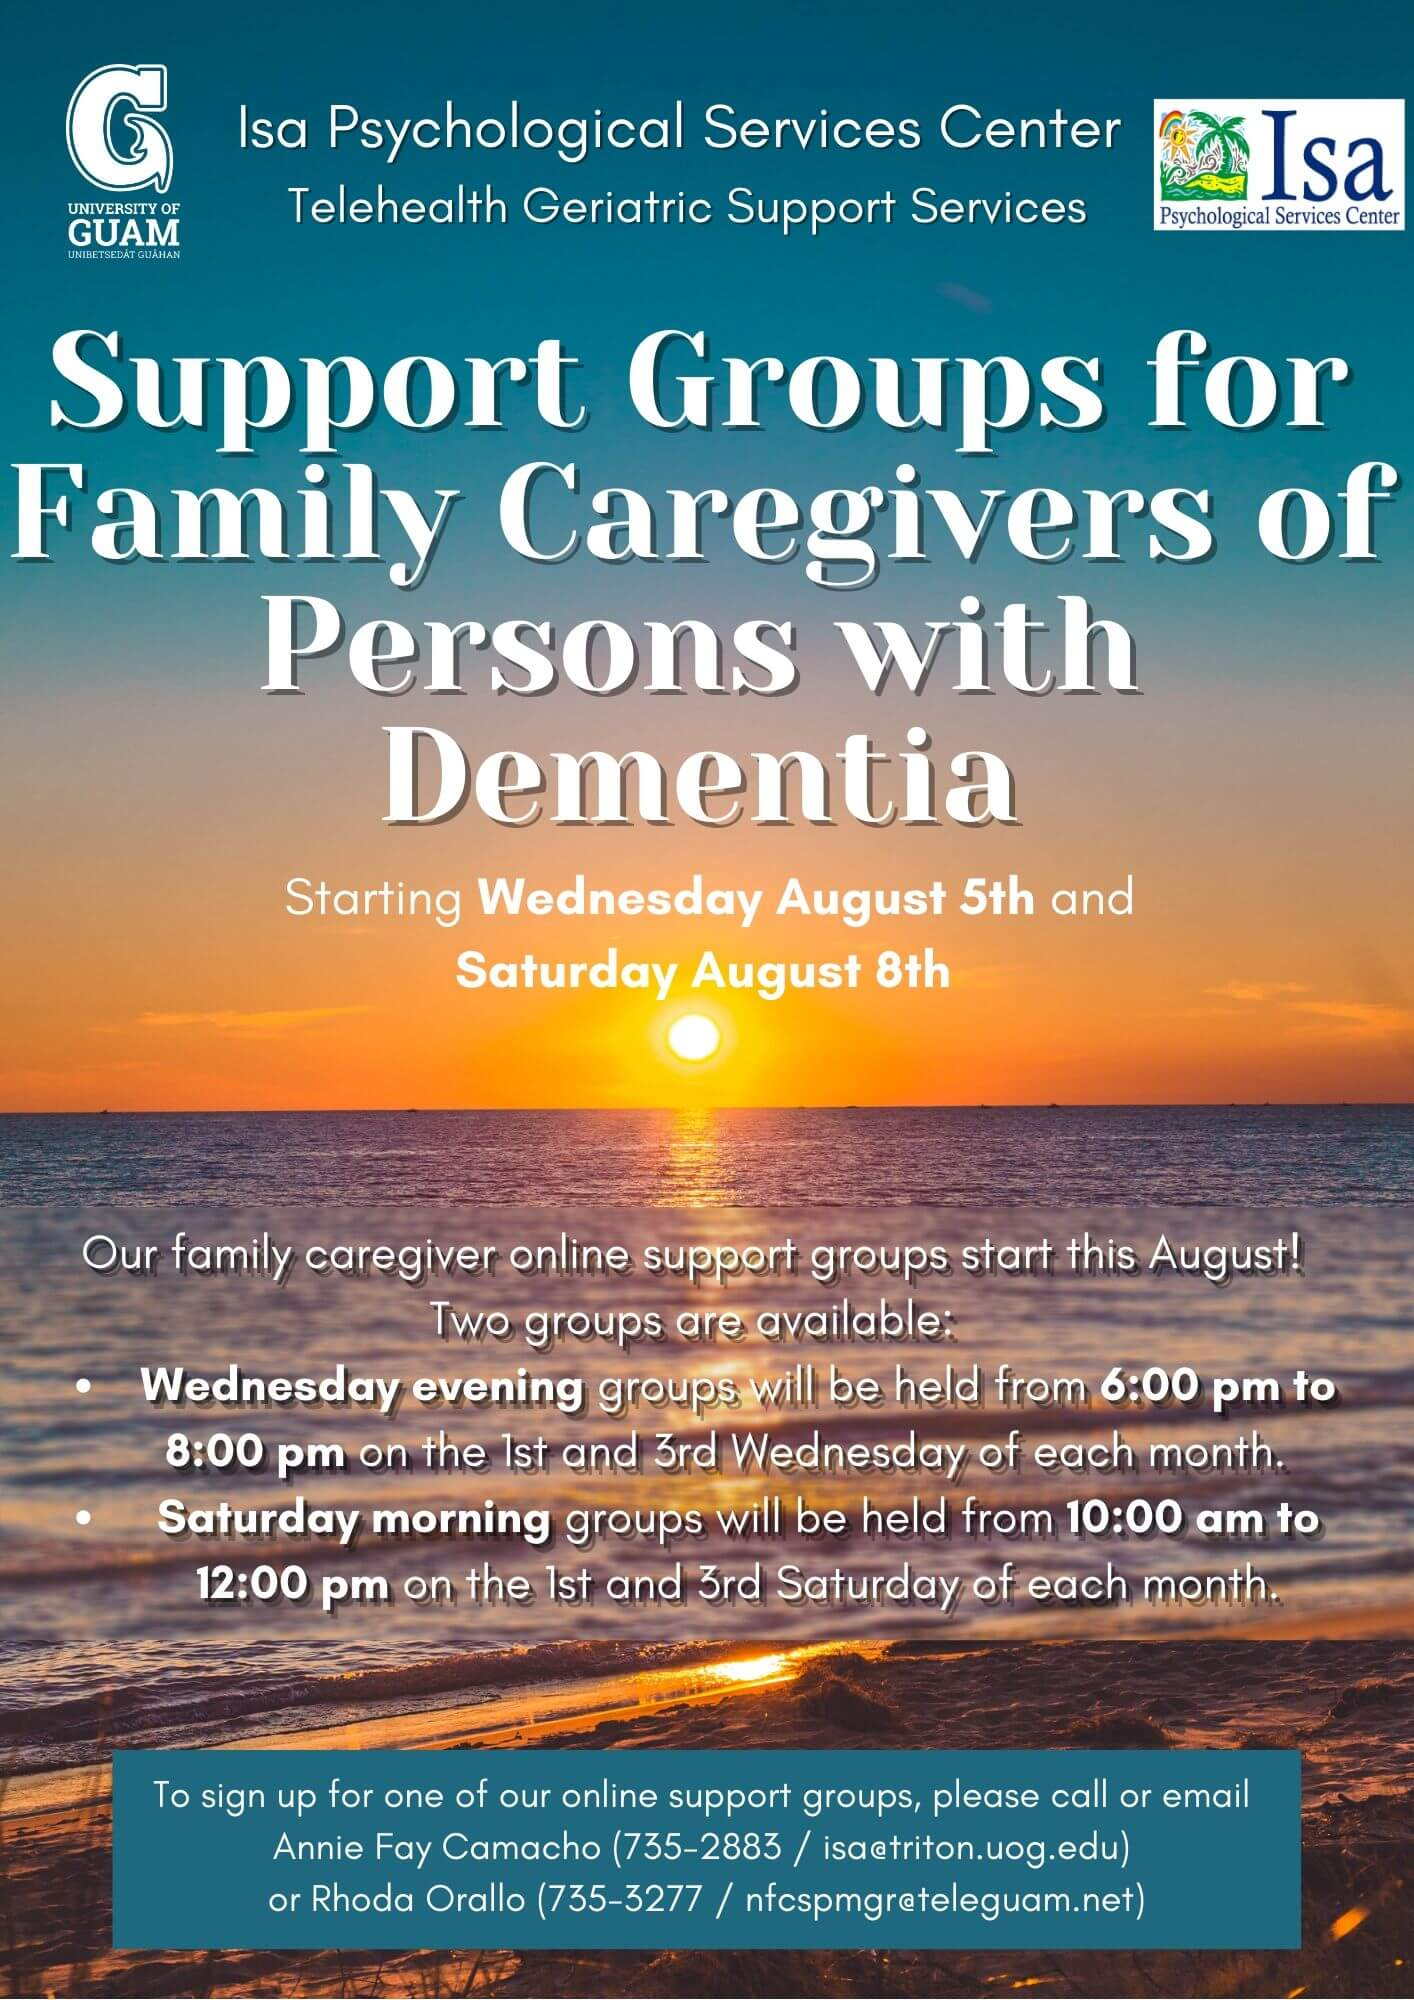 Support group for caregivers of persons with dementia